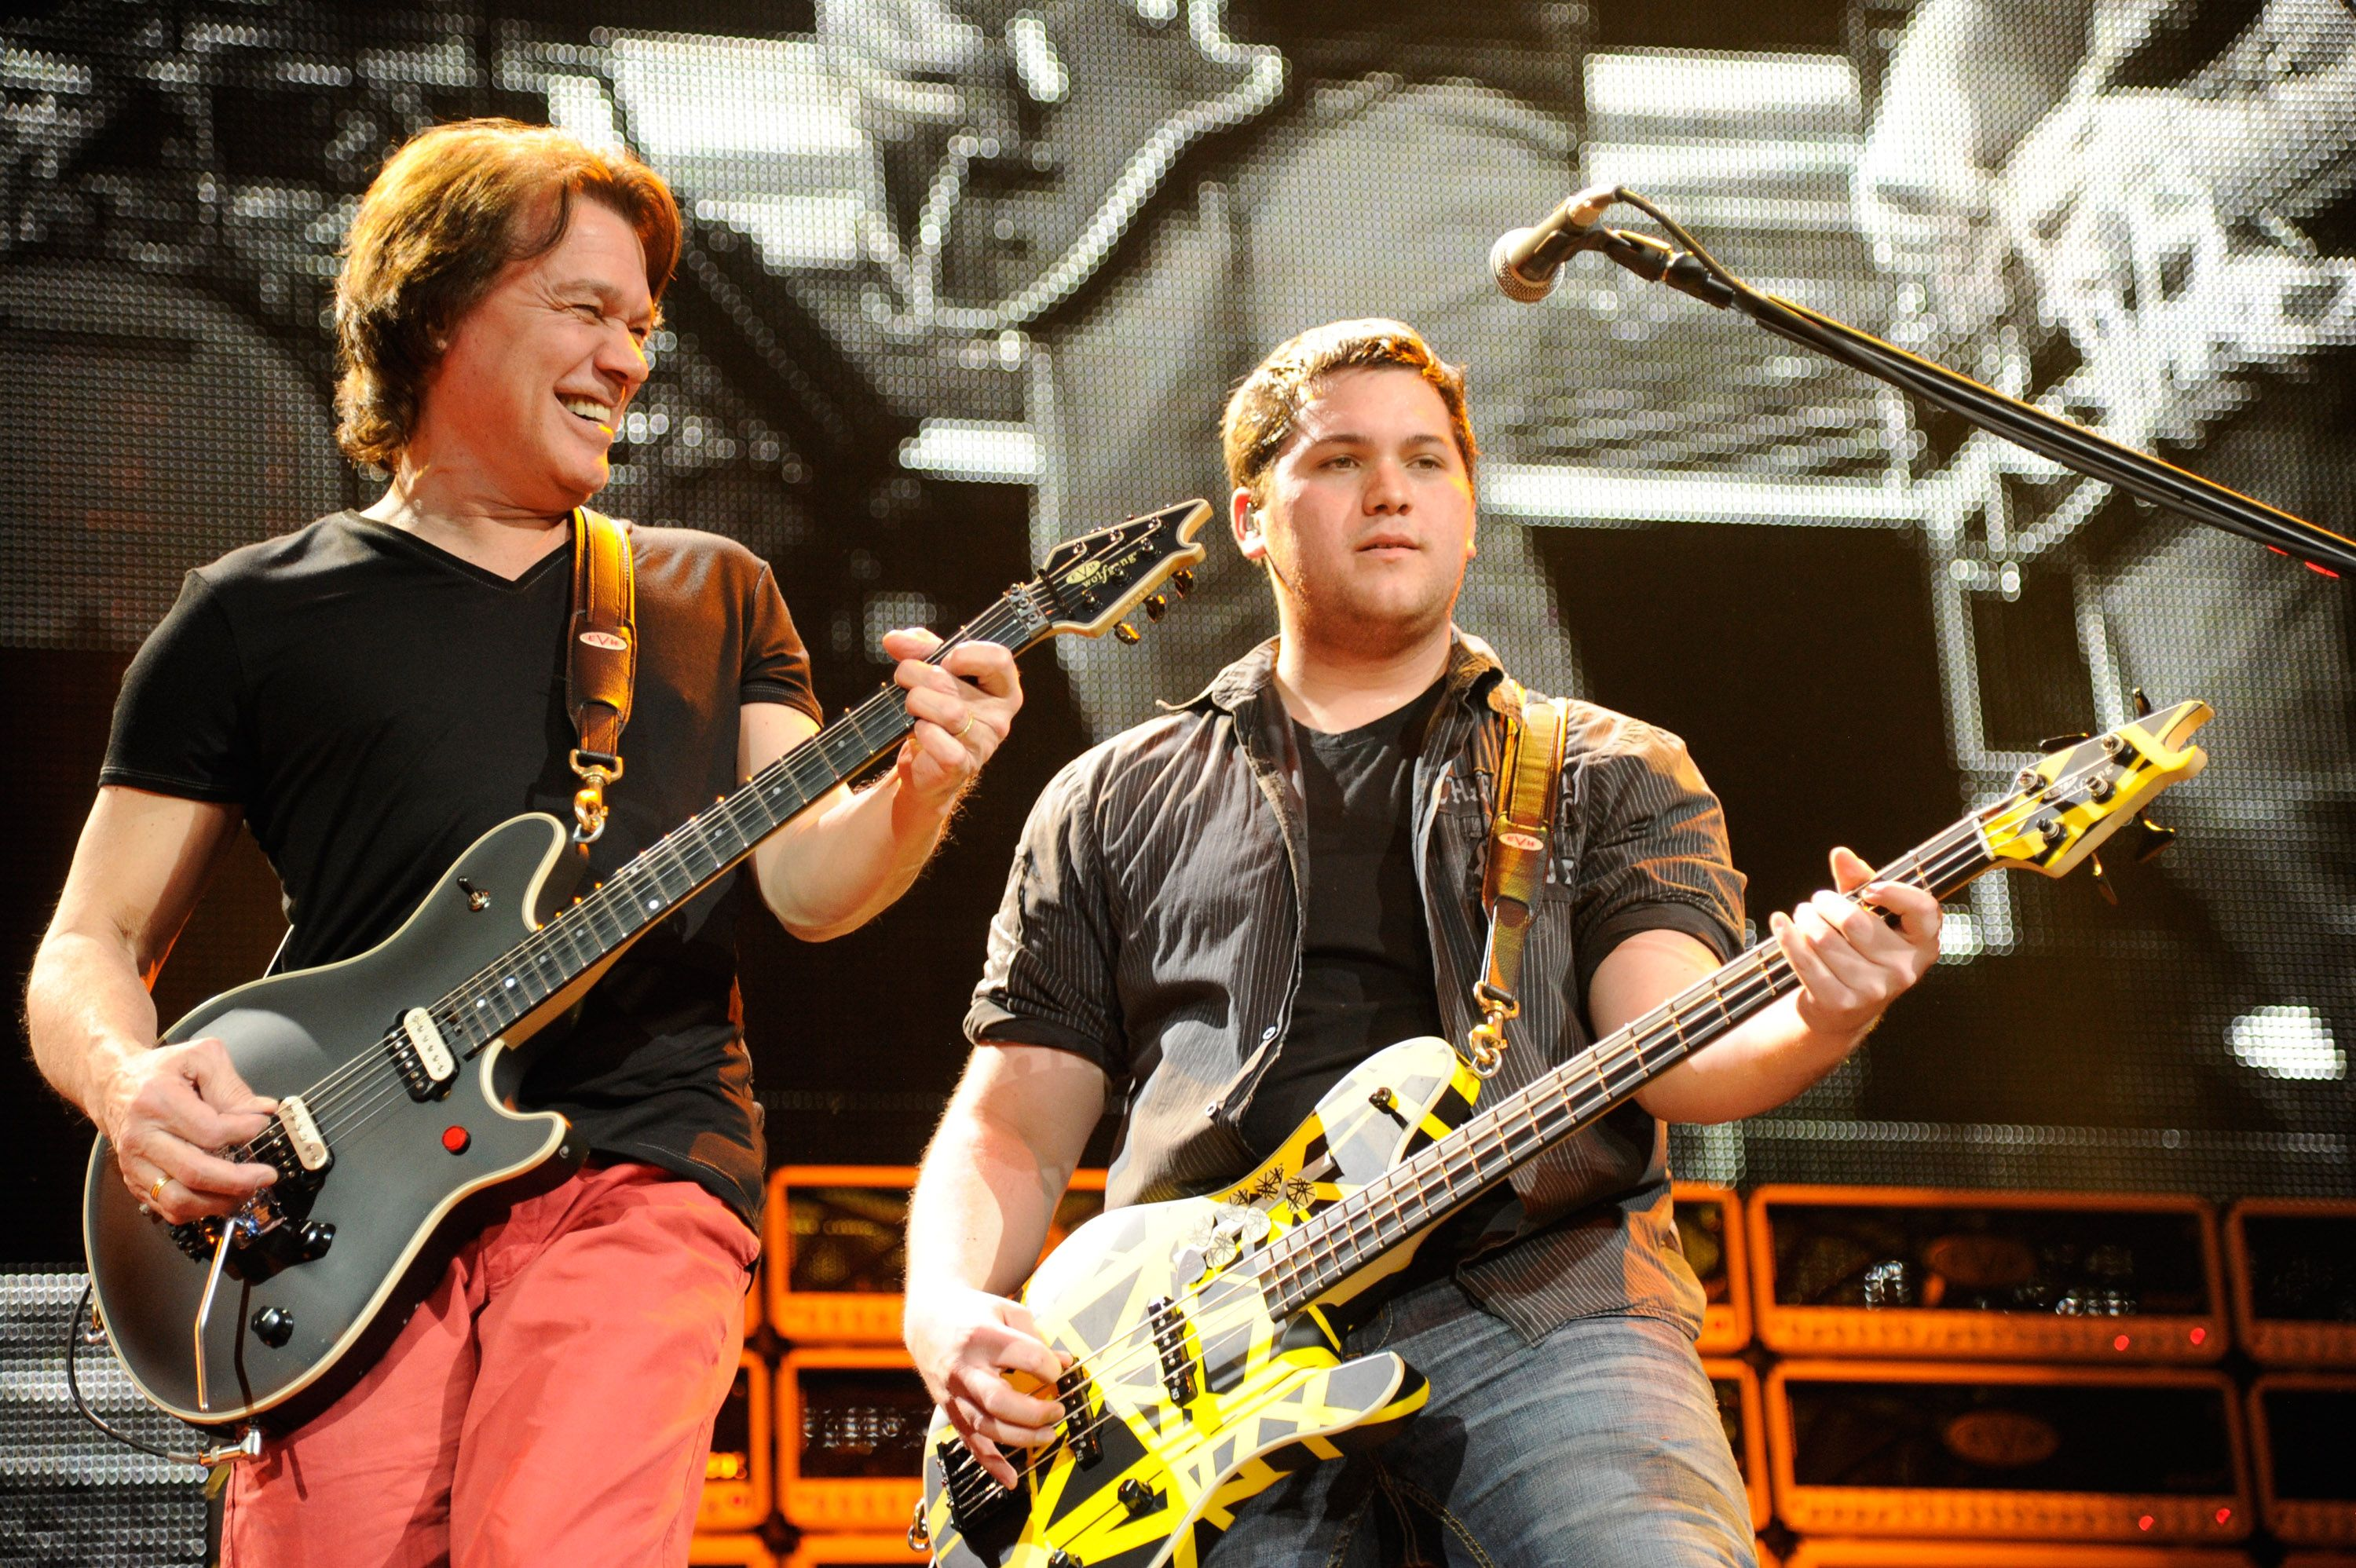 """Eddie Van Halen and Wolfgang Van Halen of Van Halen perform during """"A Different Kind of Truth"""" tour at Madison Square Garden on February 28, 2012 .   Photo: Getty Images."""